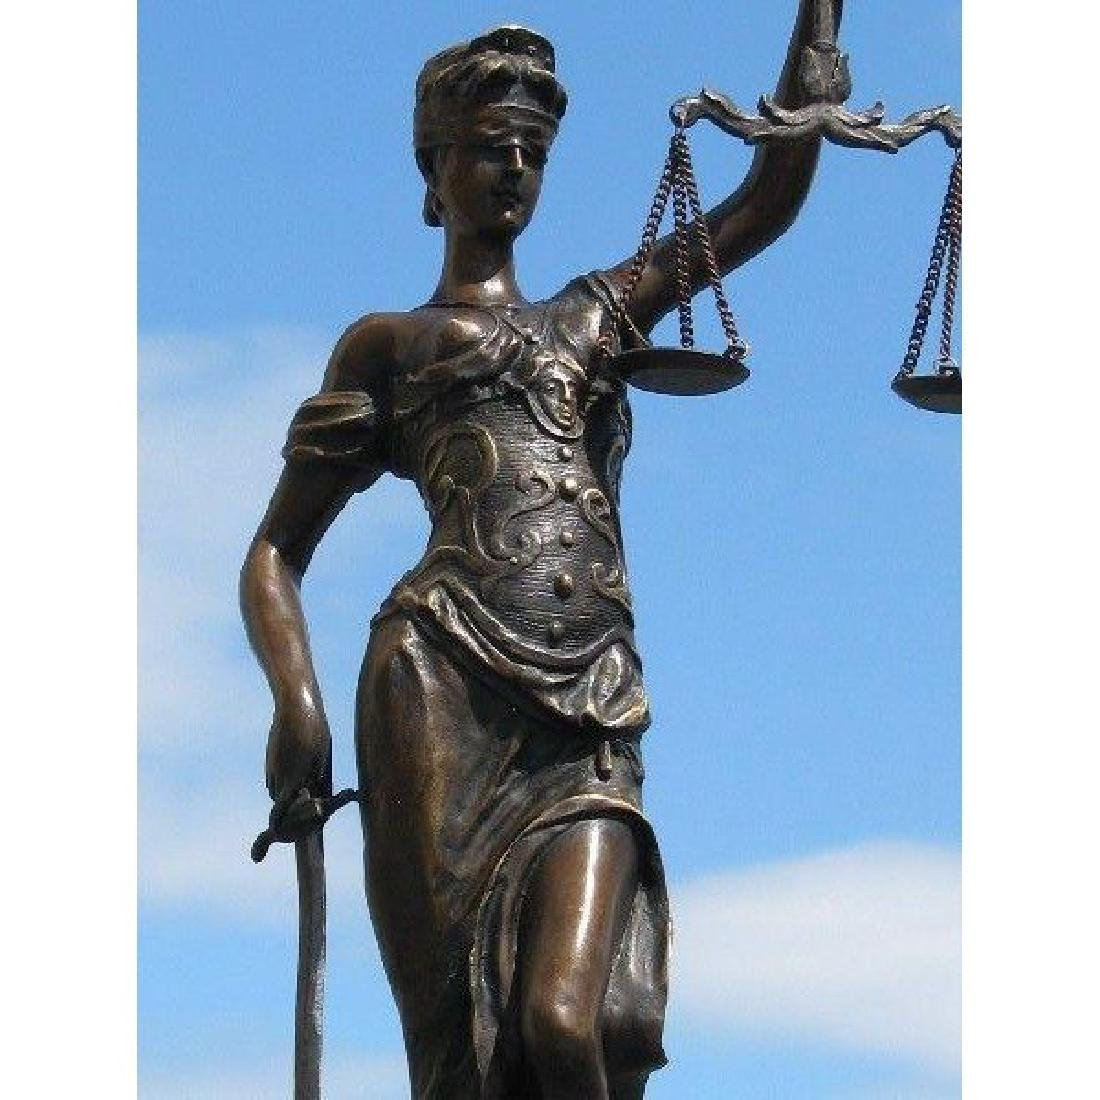 BRONZE BLIND JUSTICE LAW MARBLE STATUE LADY SCALE